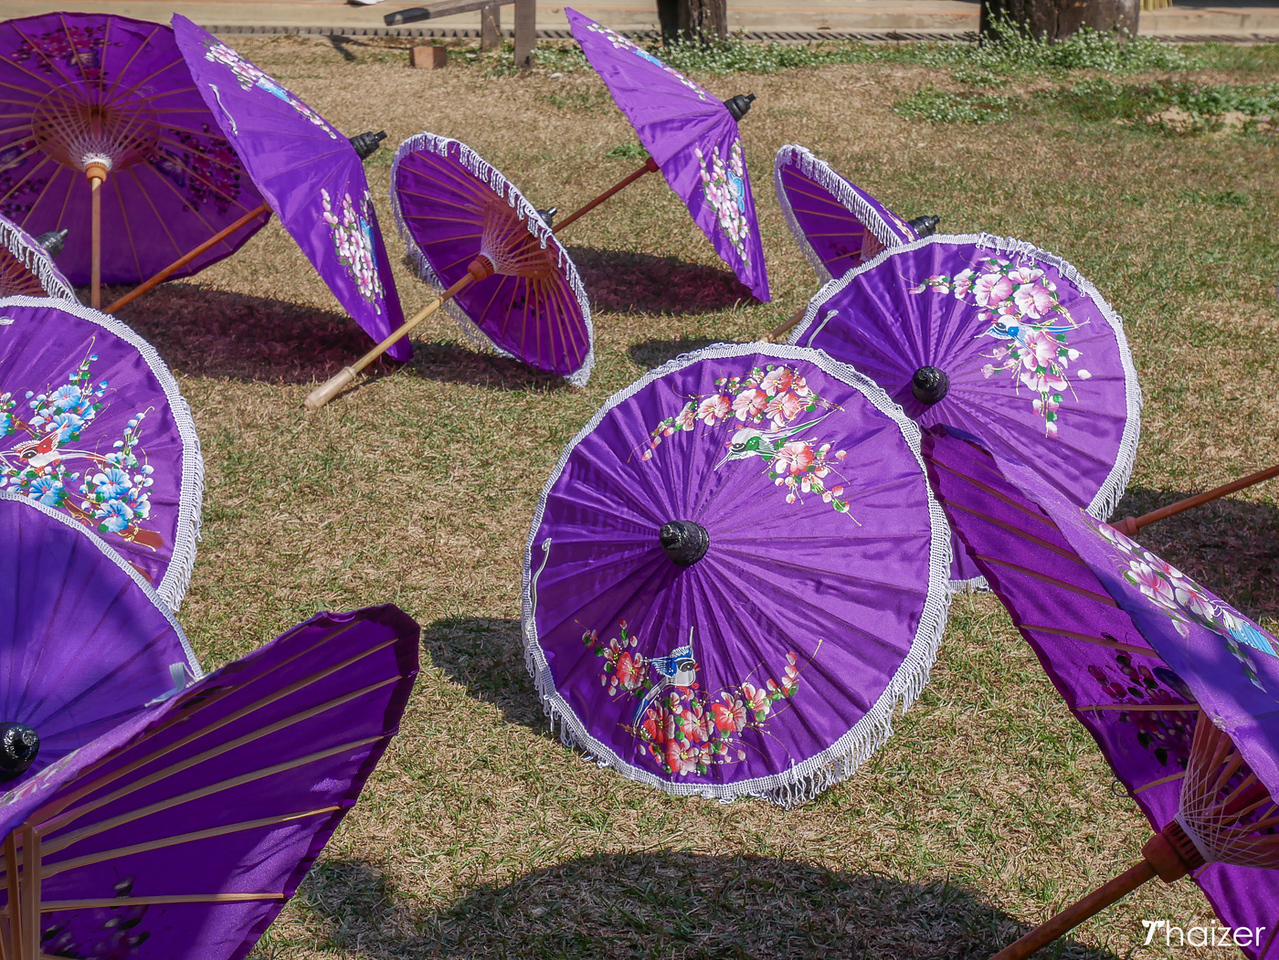 drying umbrellas in the sun